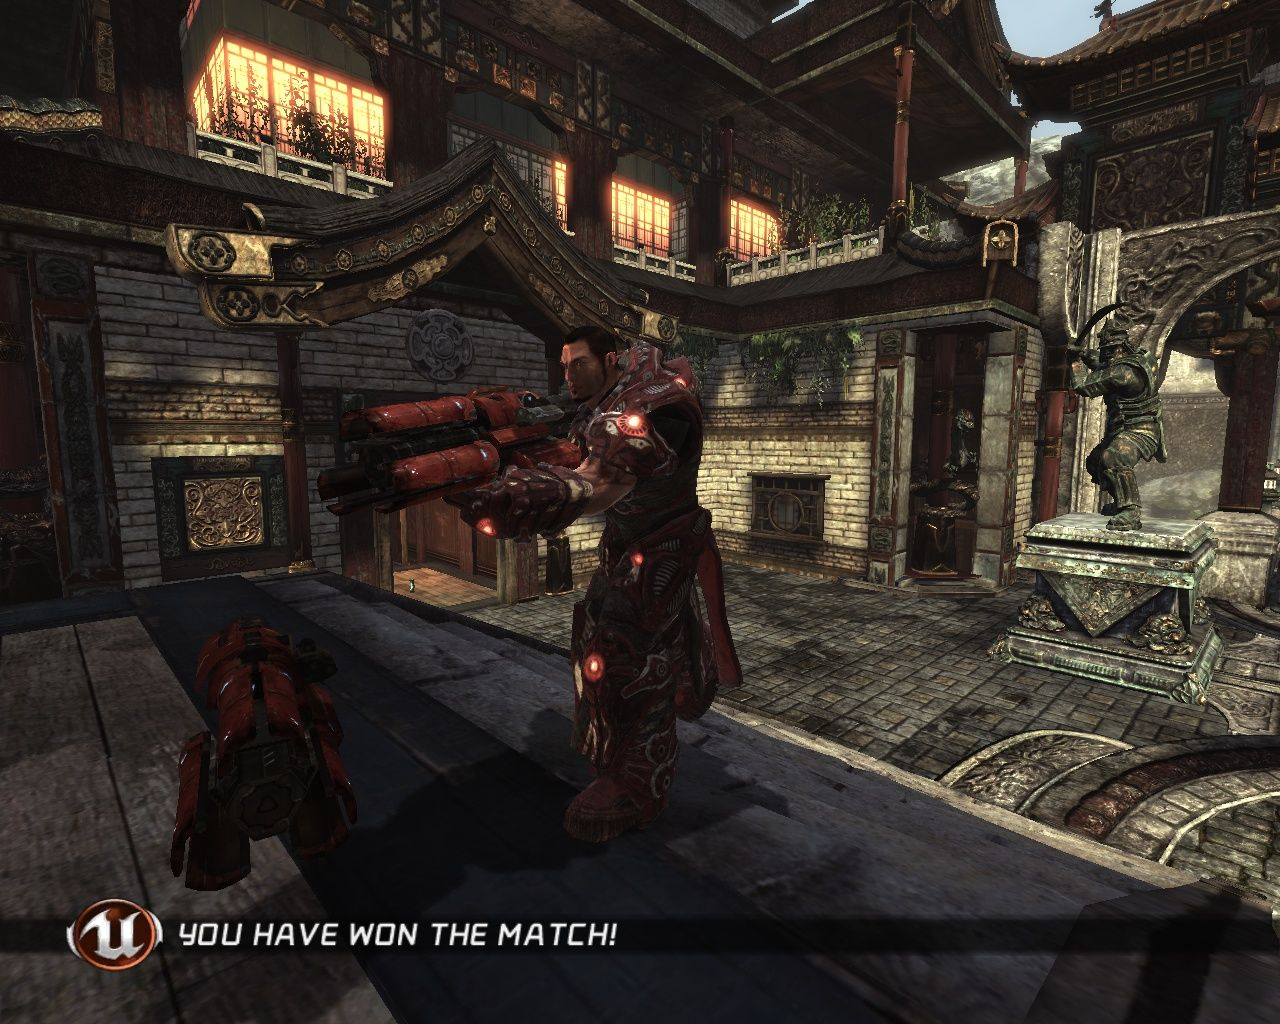 Unreal Tournament III Windows I've won the match (did anyone doubt me?).